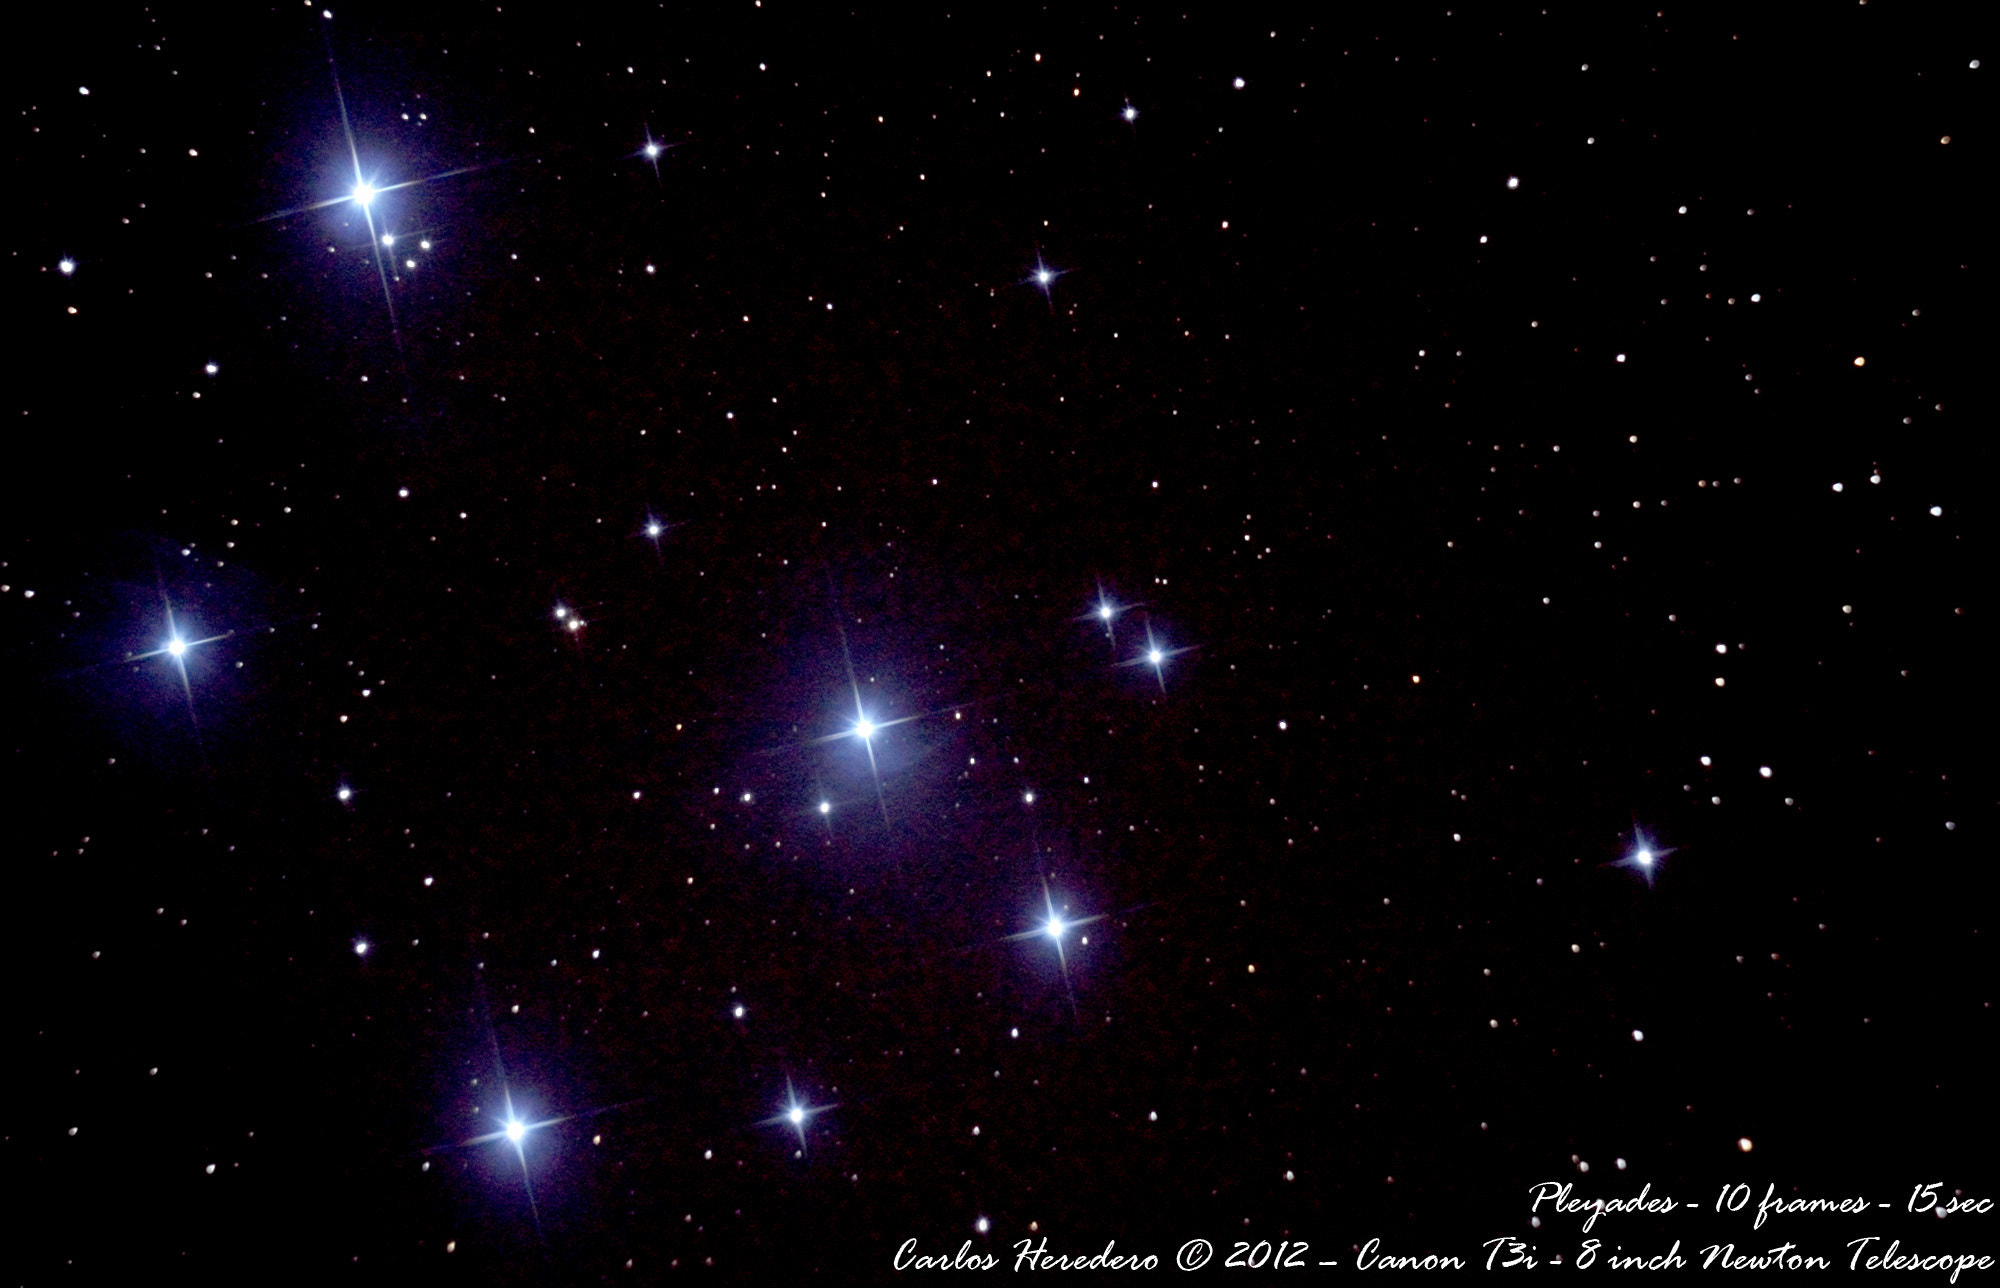 Photograph Pleyades by Carlos Heredero on 500px